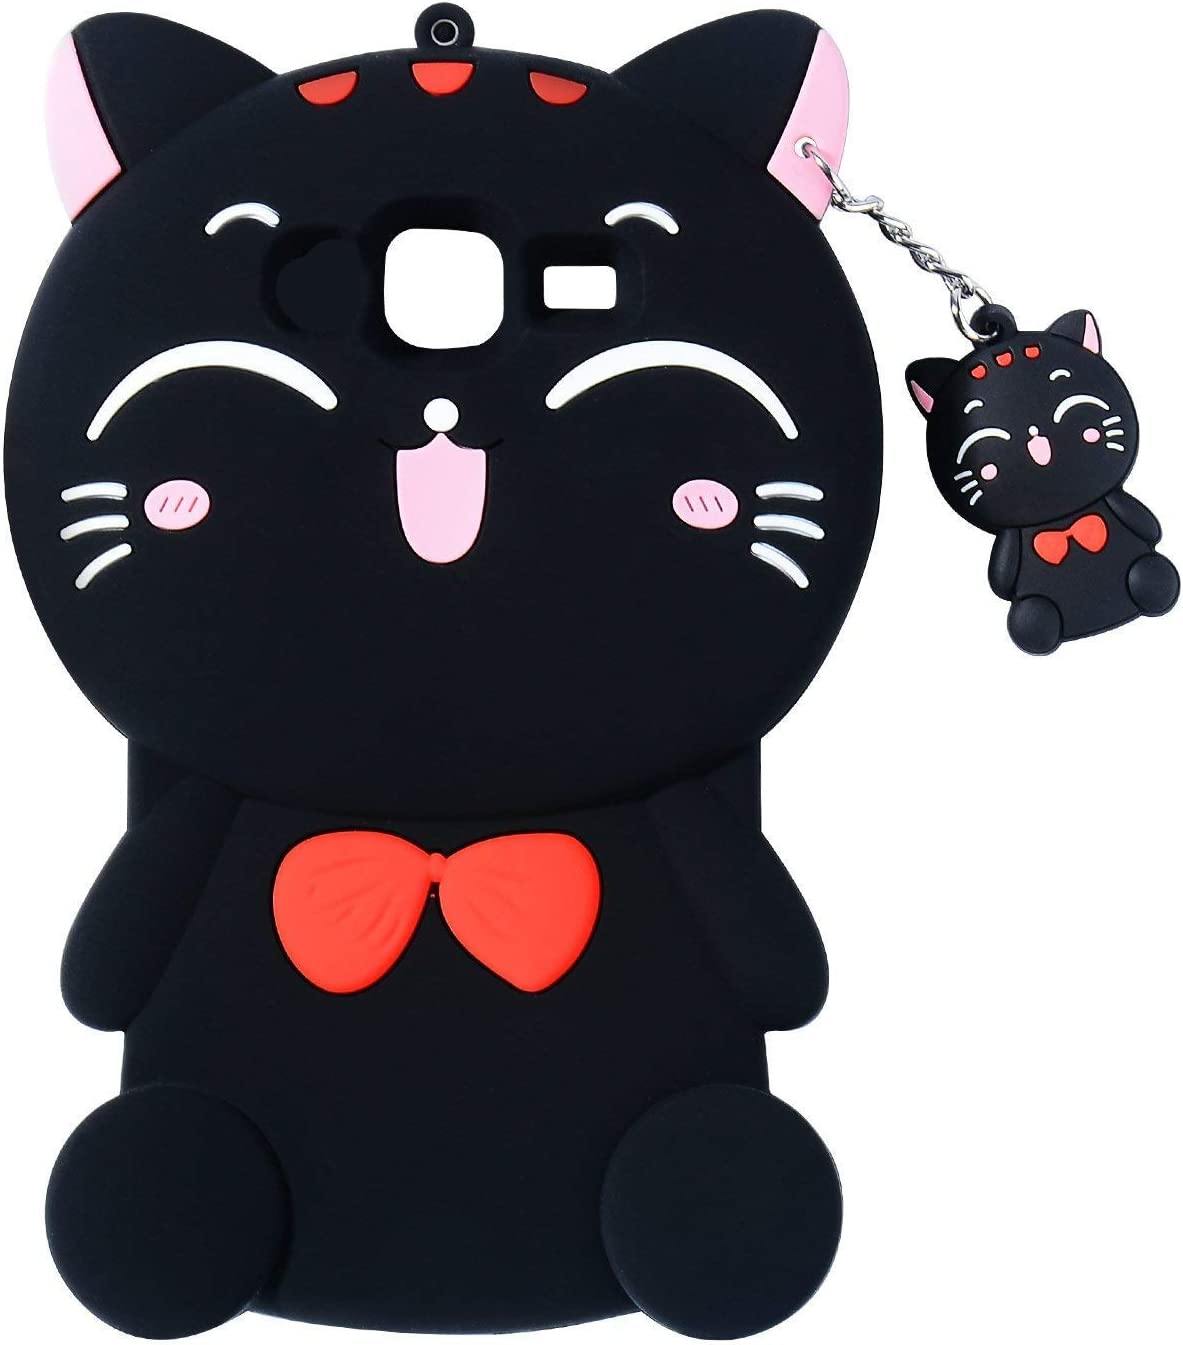 Joyleop Black Cat Case for Samsung Galaxy J5 Prime,Cute 3D Cartoon Animal Cover,Kids Girls Fun Soft Silicone Rubber Kawaii Character Unique Cases,Shockproof Skin Protector for Samsung J5Prime (Black)